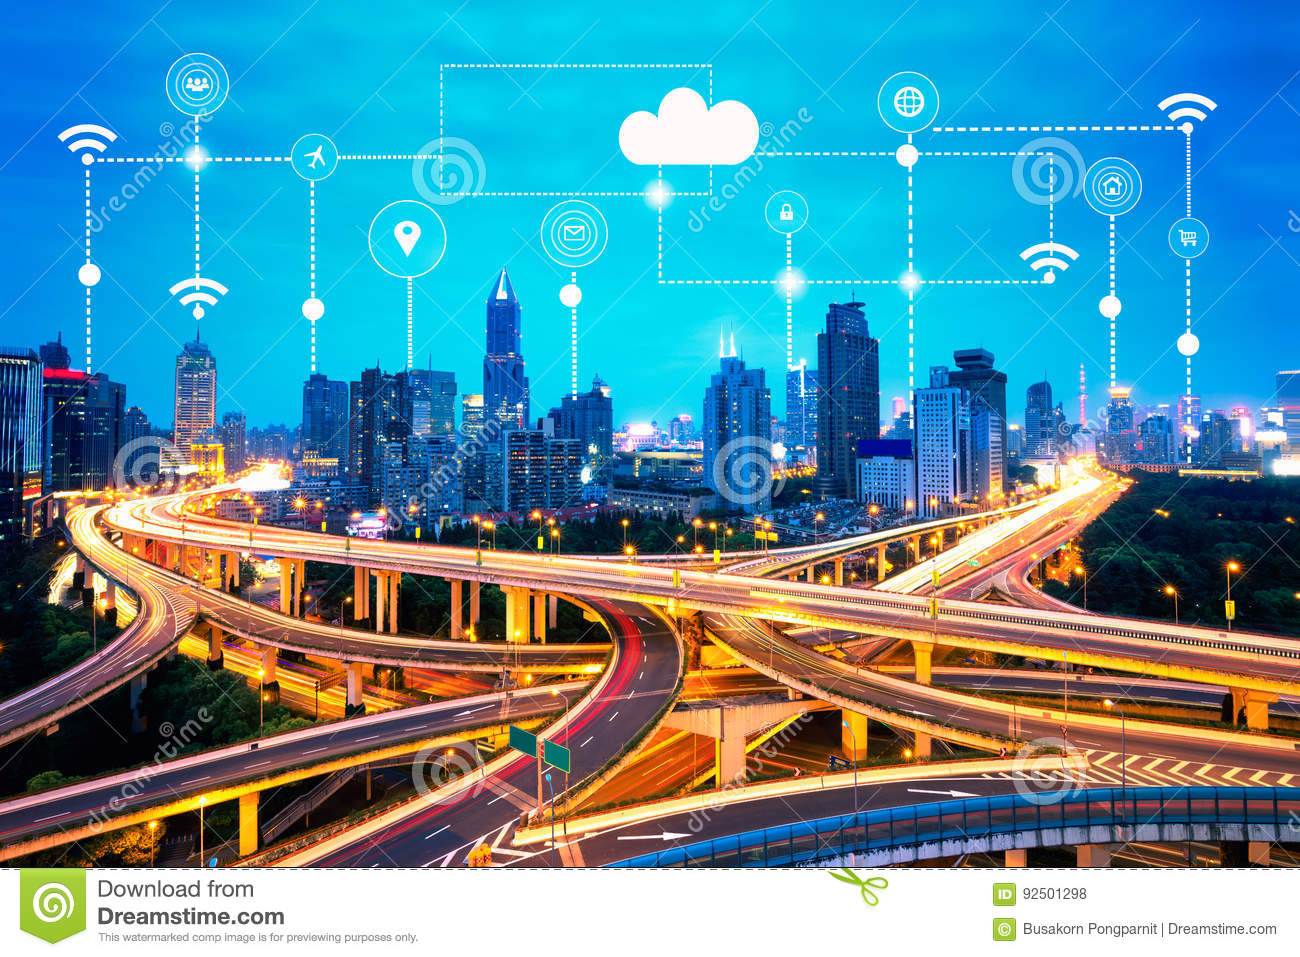 Smart city and technology icons, internet of things, with smart services networks background